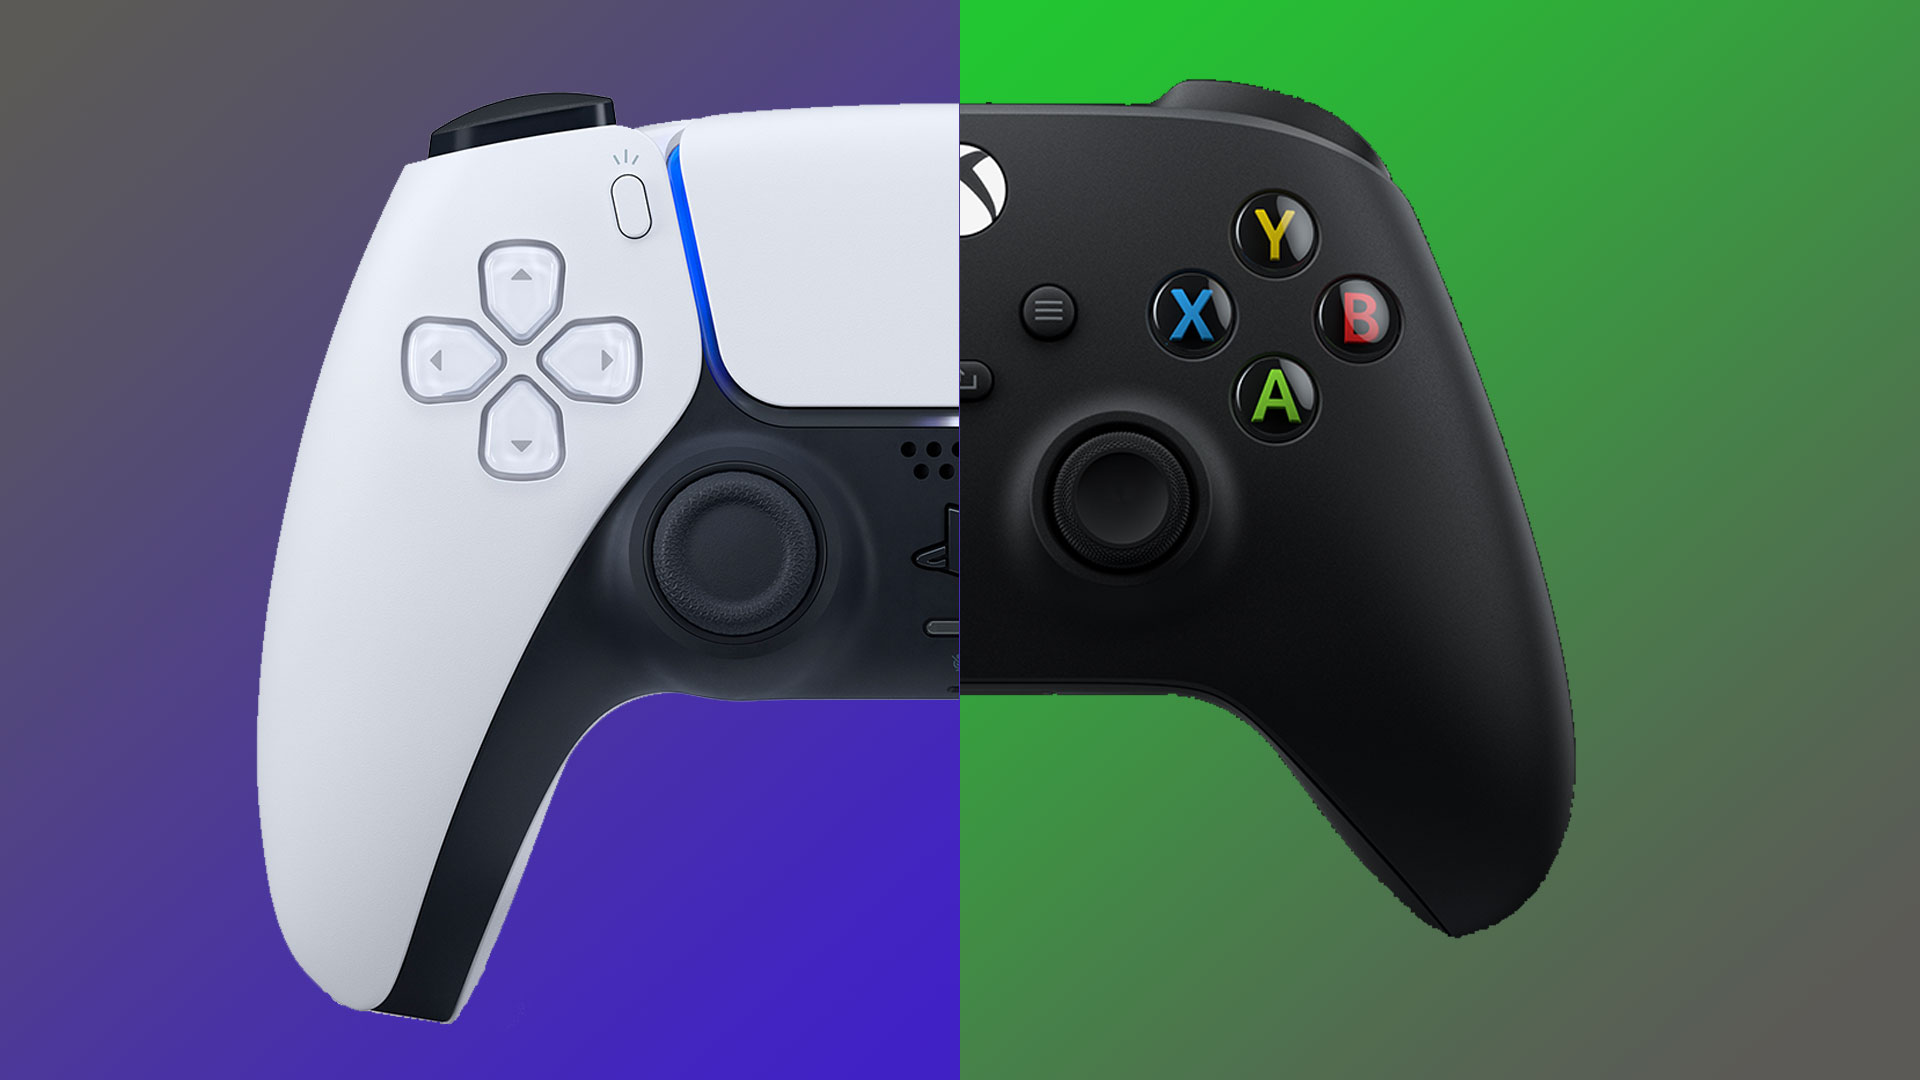 Ps5 Vs Xbox Series X Will Sony Dominate The Next Generation Or Can Microsoft Stage A Huge Comeback Gamesradar